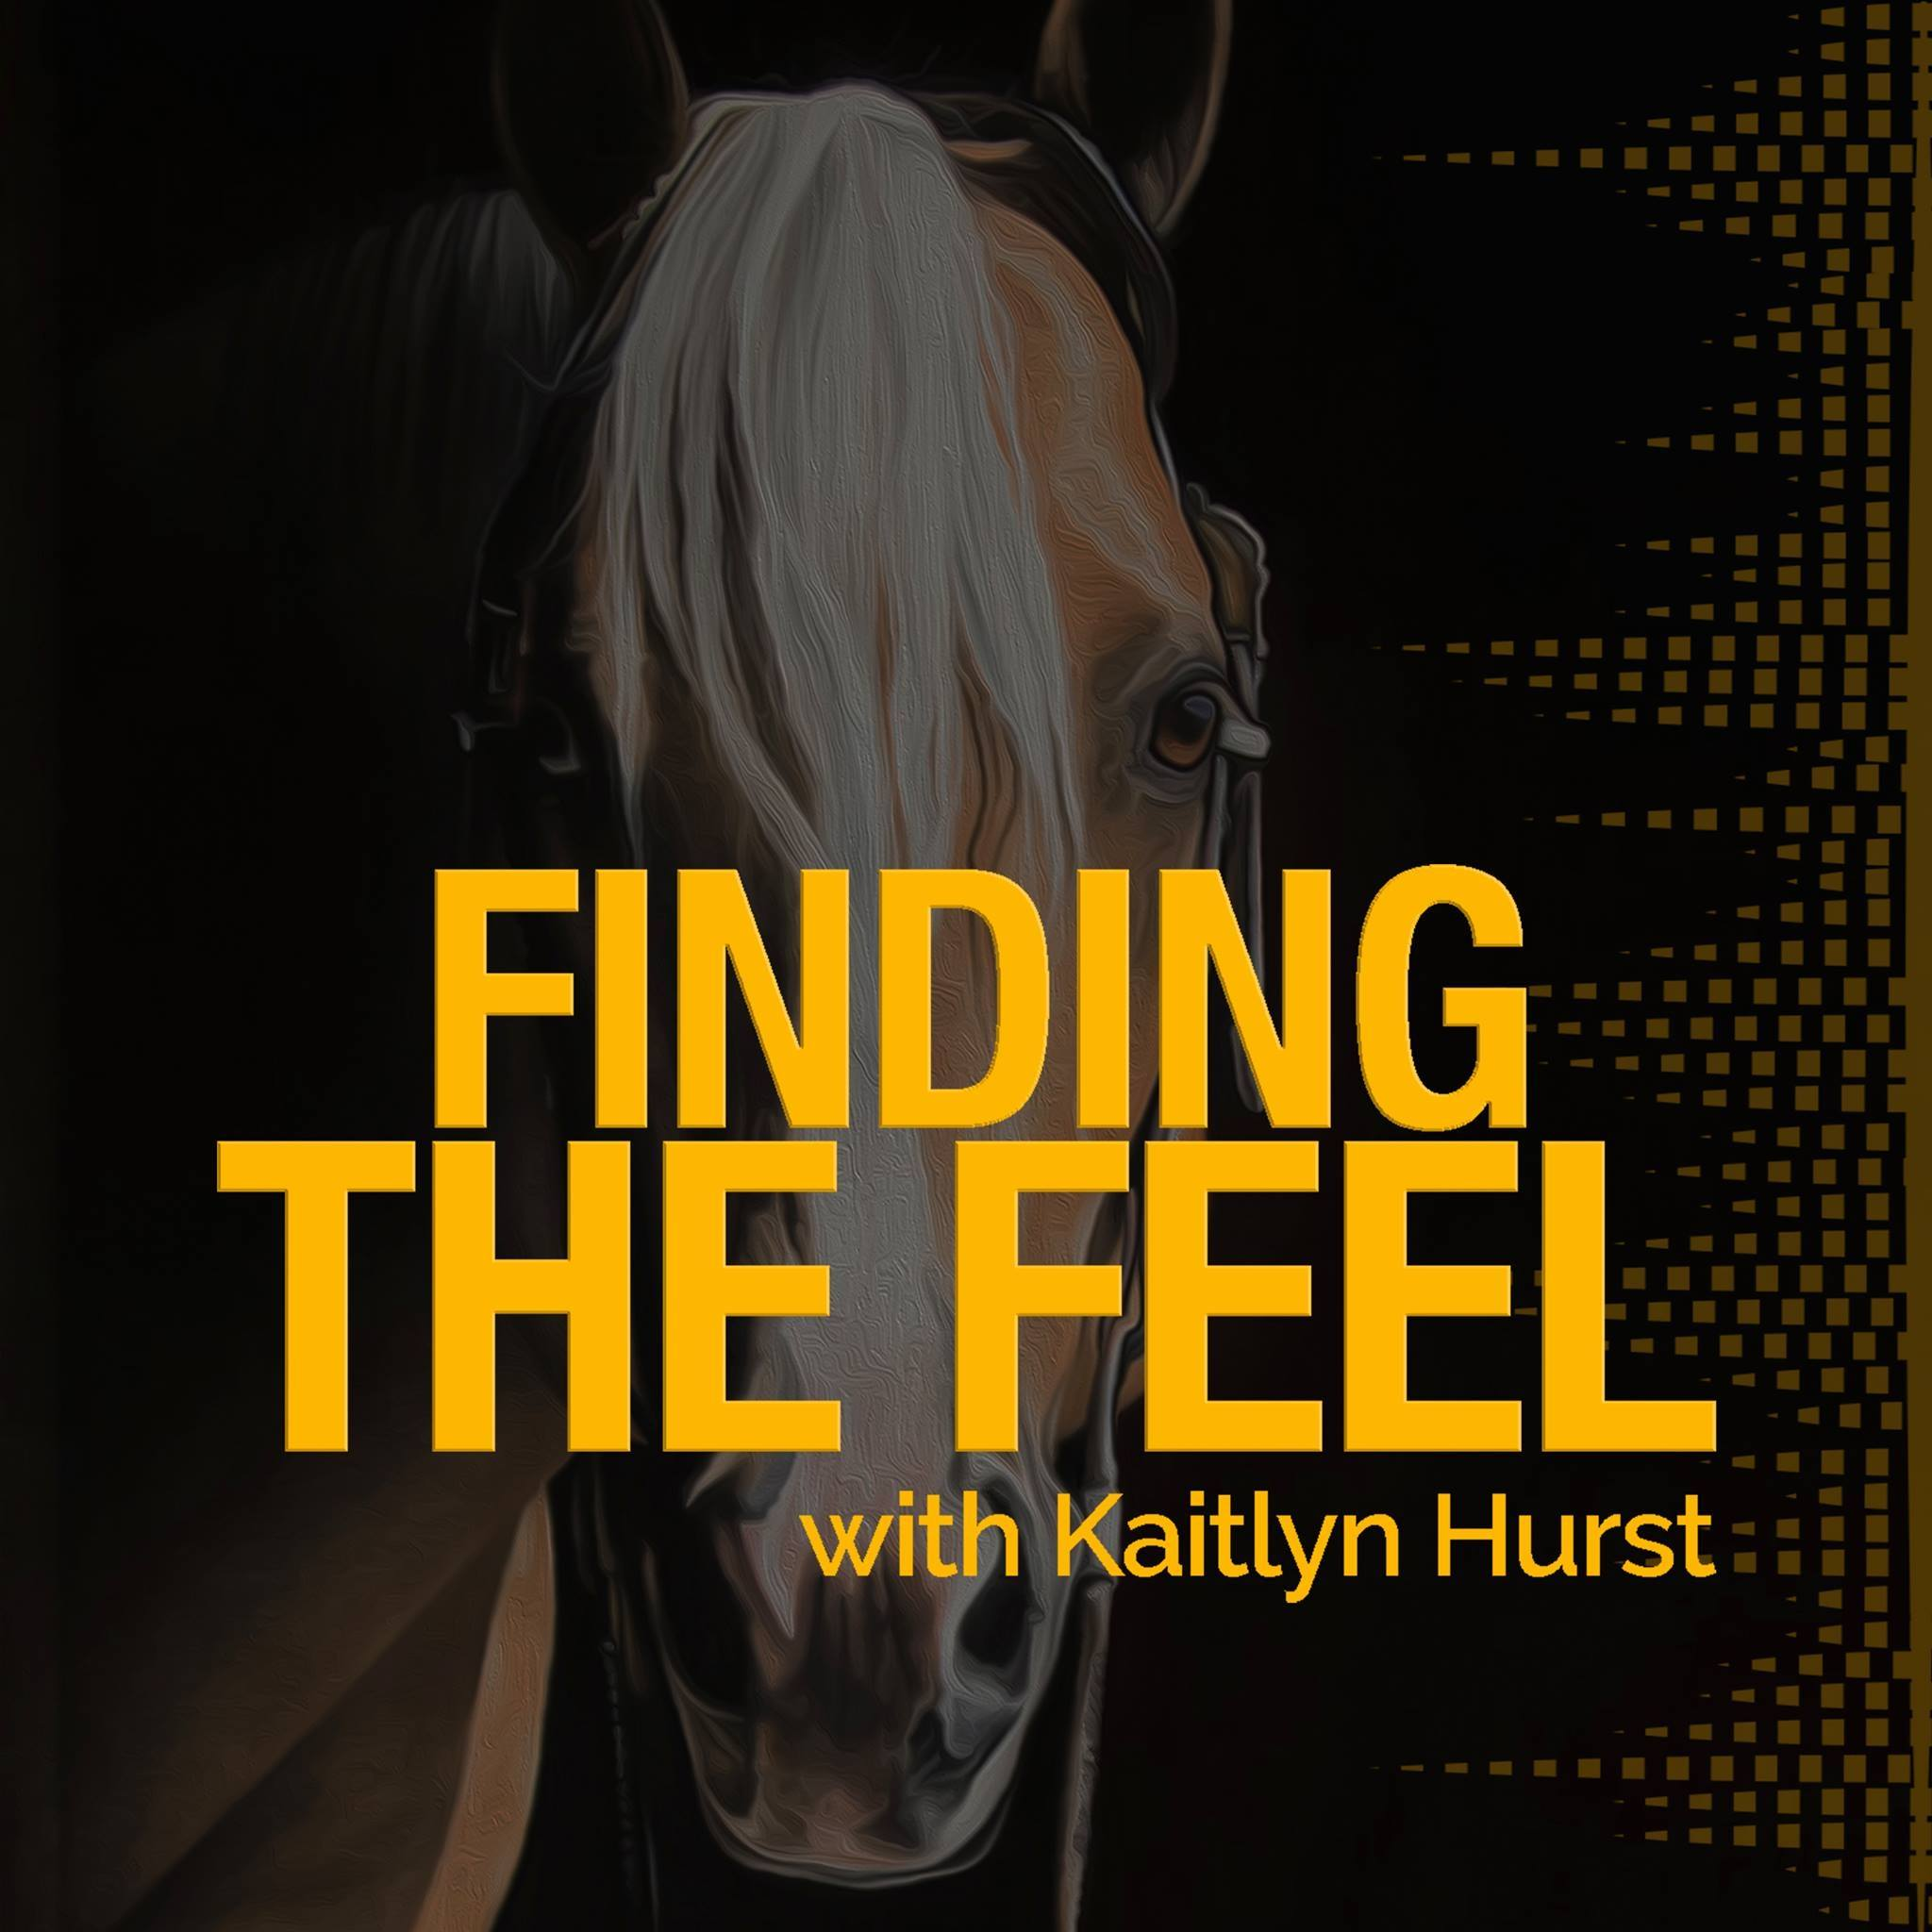 - Horse training from the human perspective. Much like NBA or NFL players do for the general public, we seek to make professional horsemen/women relatable to the everyday horse person, and empower improved horsemanship through extraordinary examples.